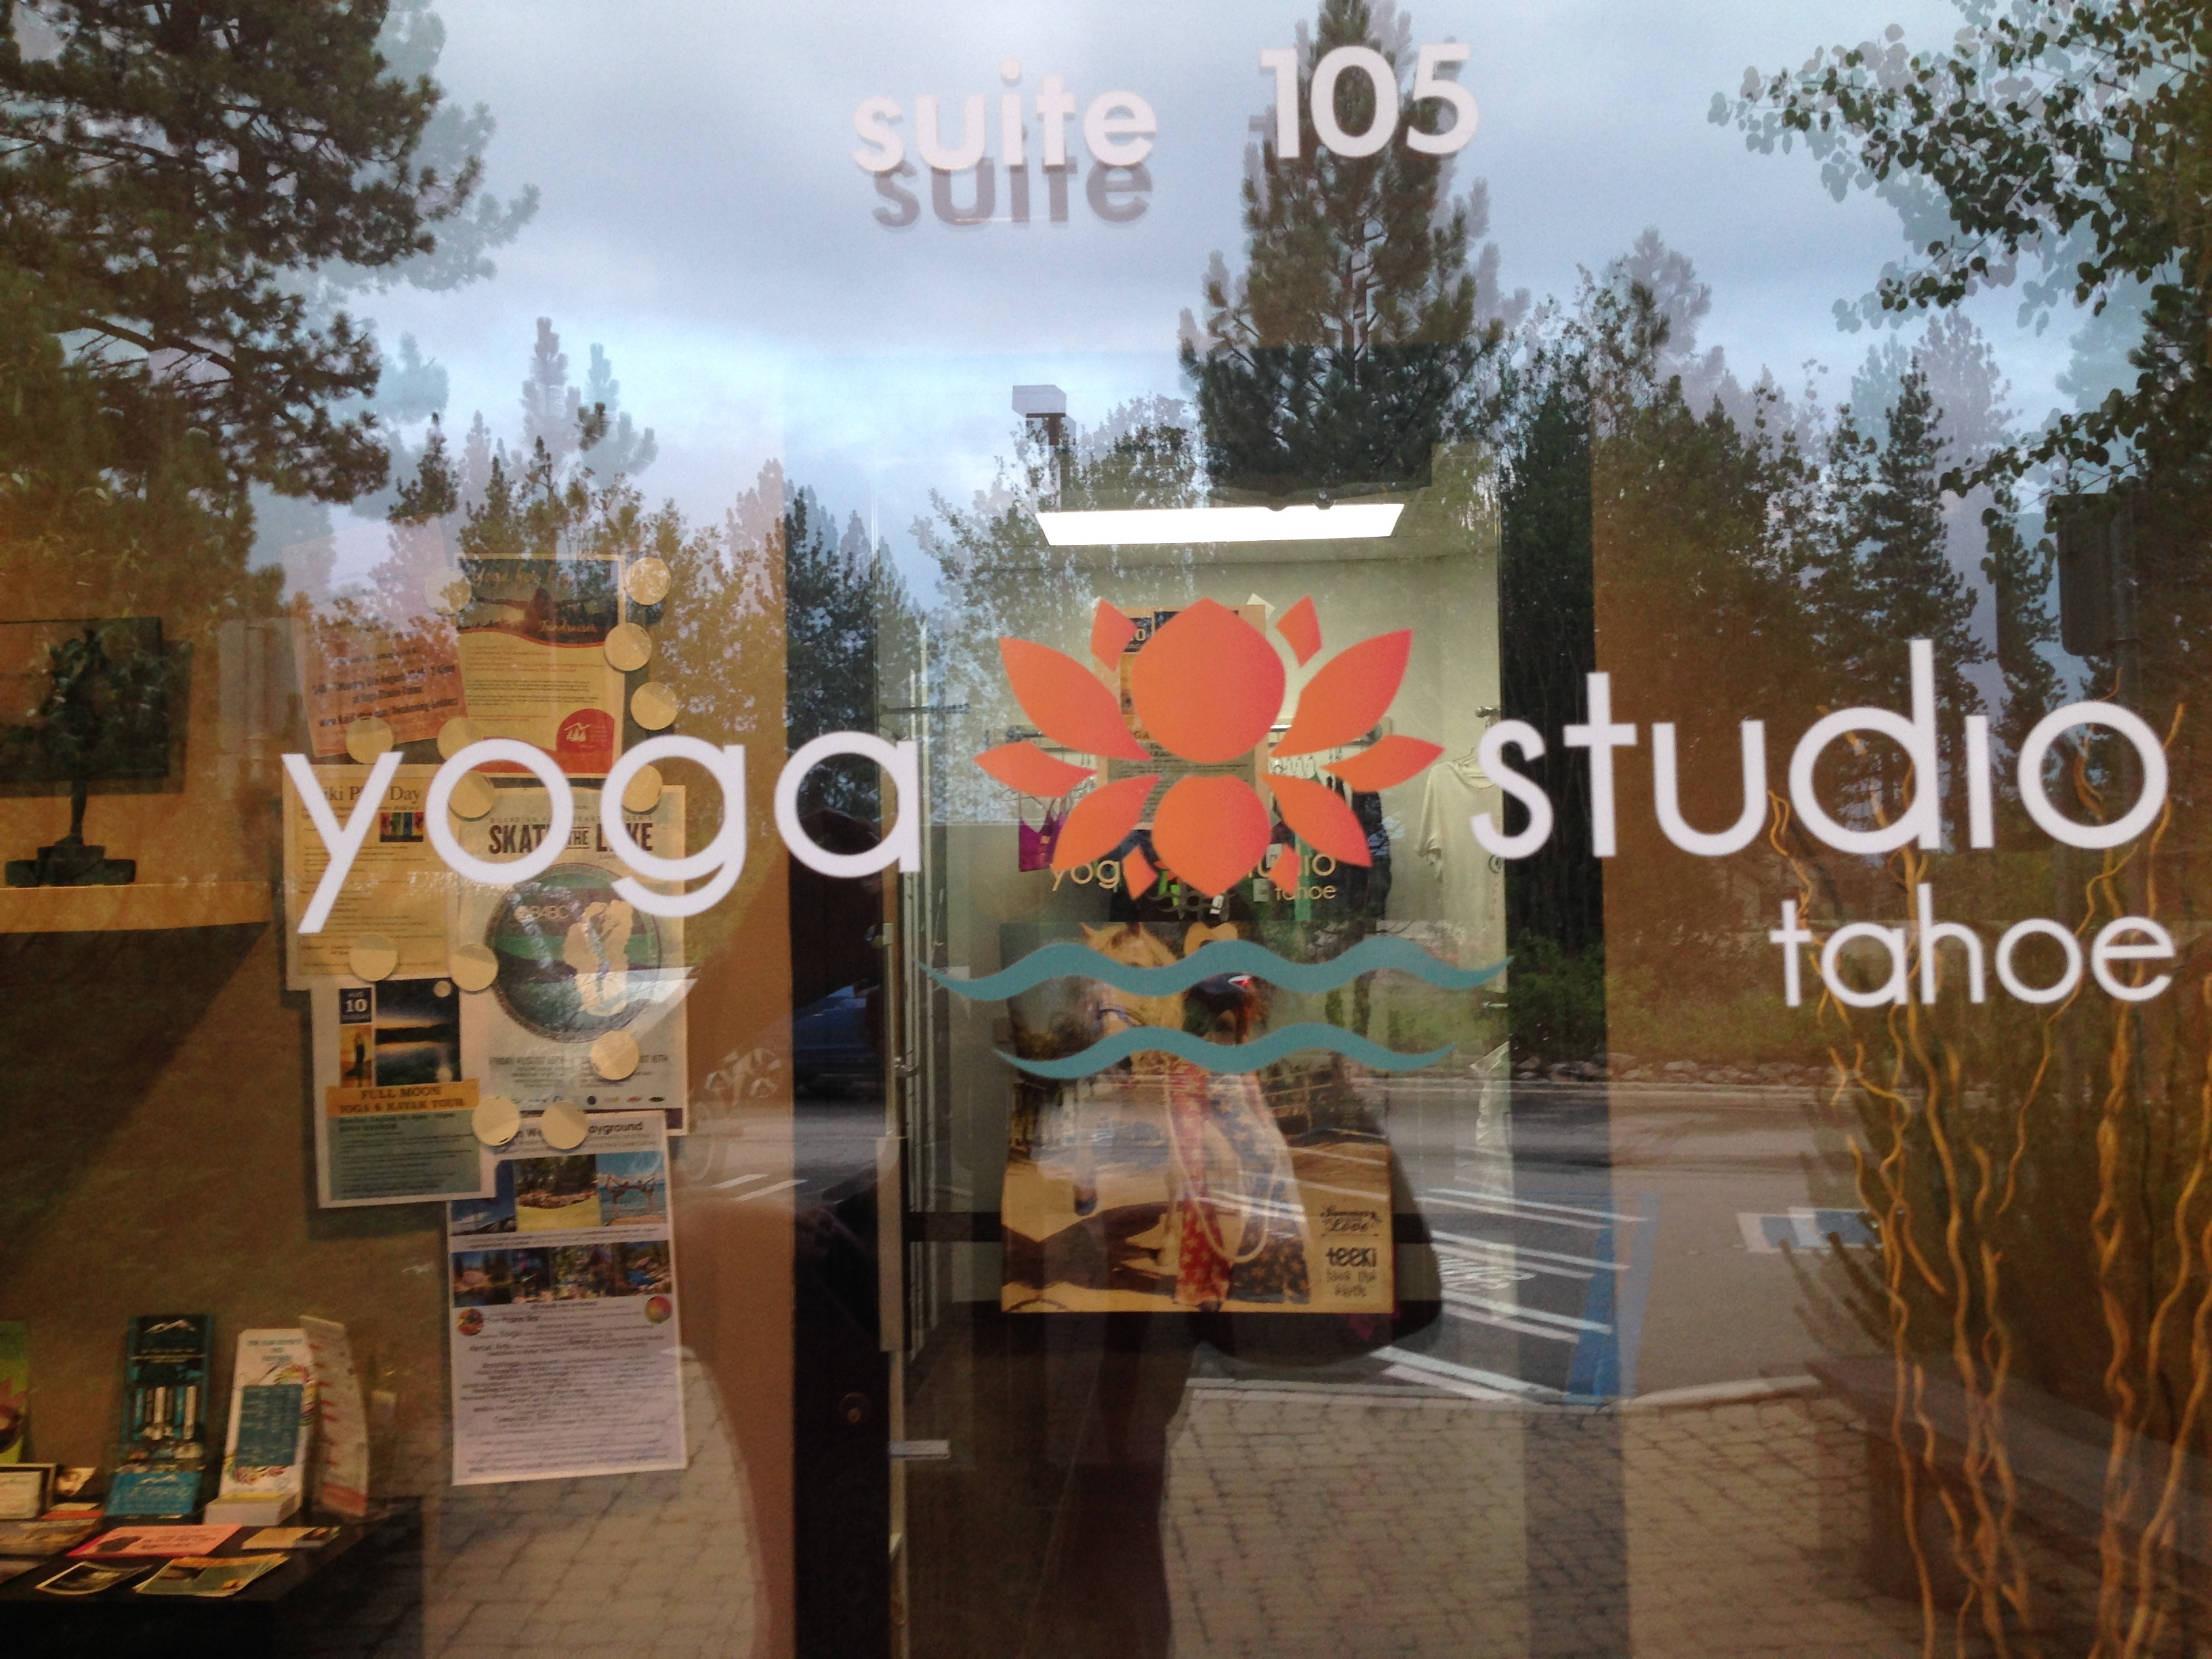 Yoga Studio Tahoe